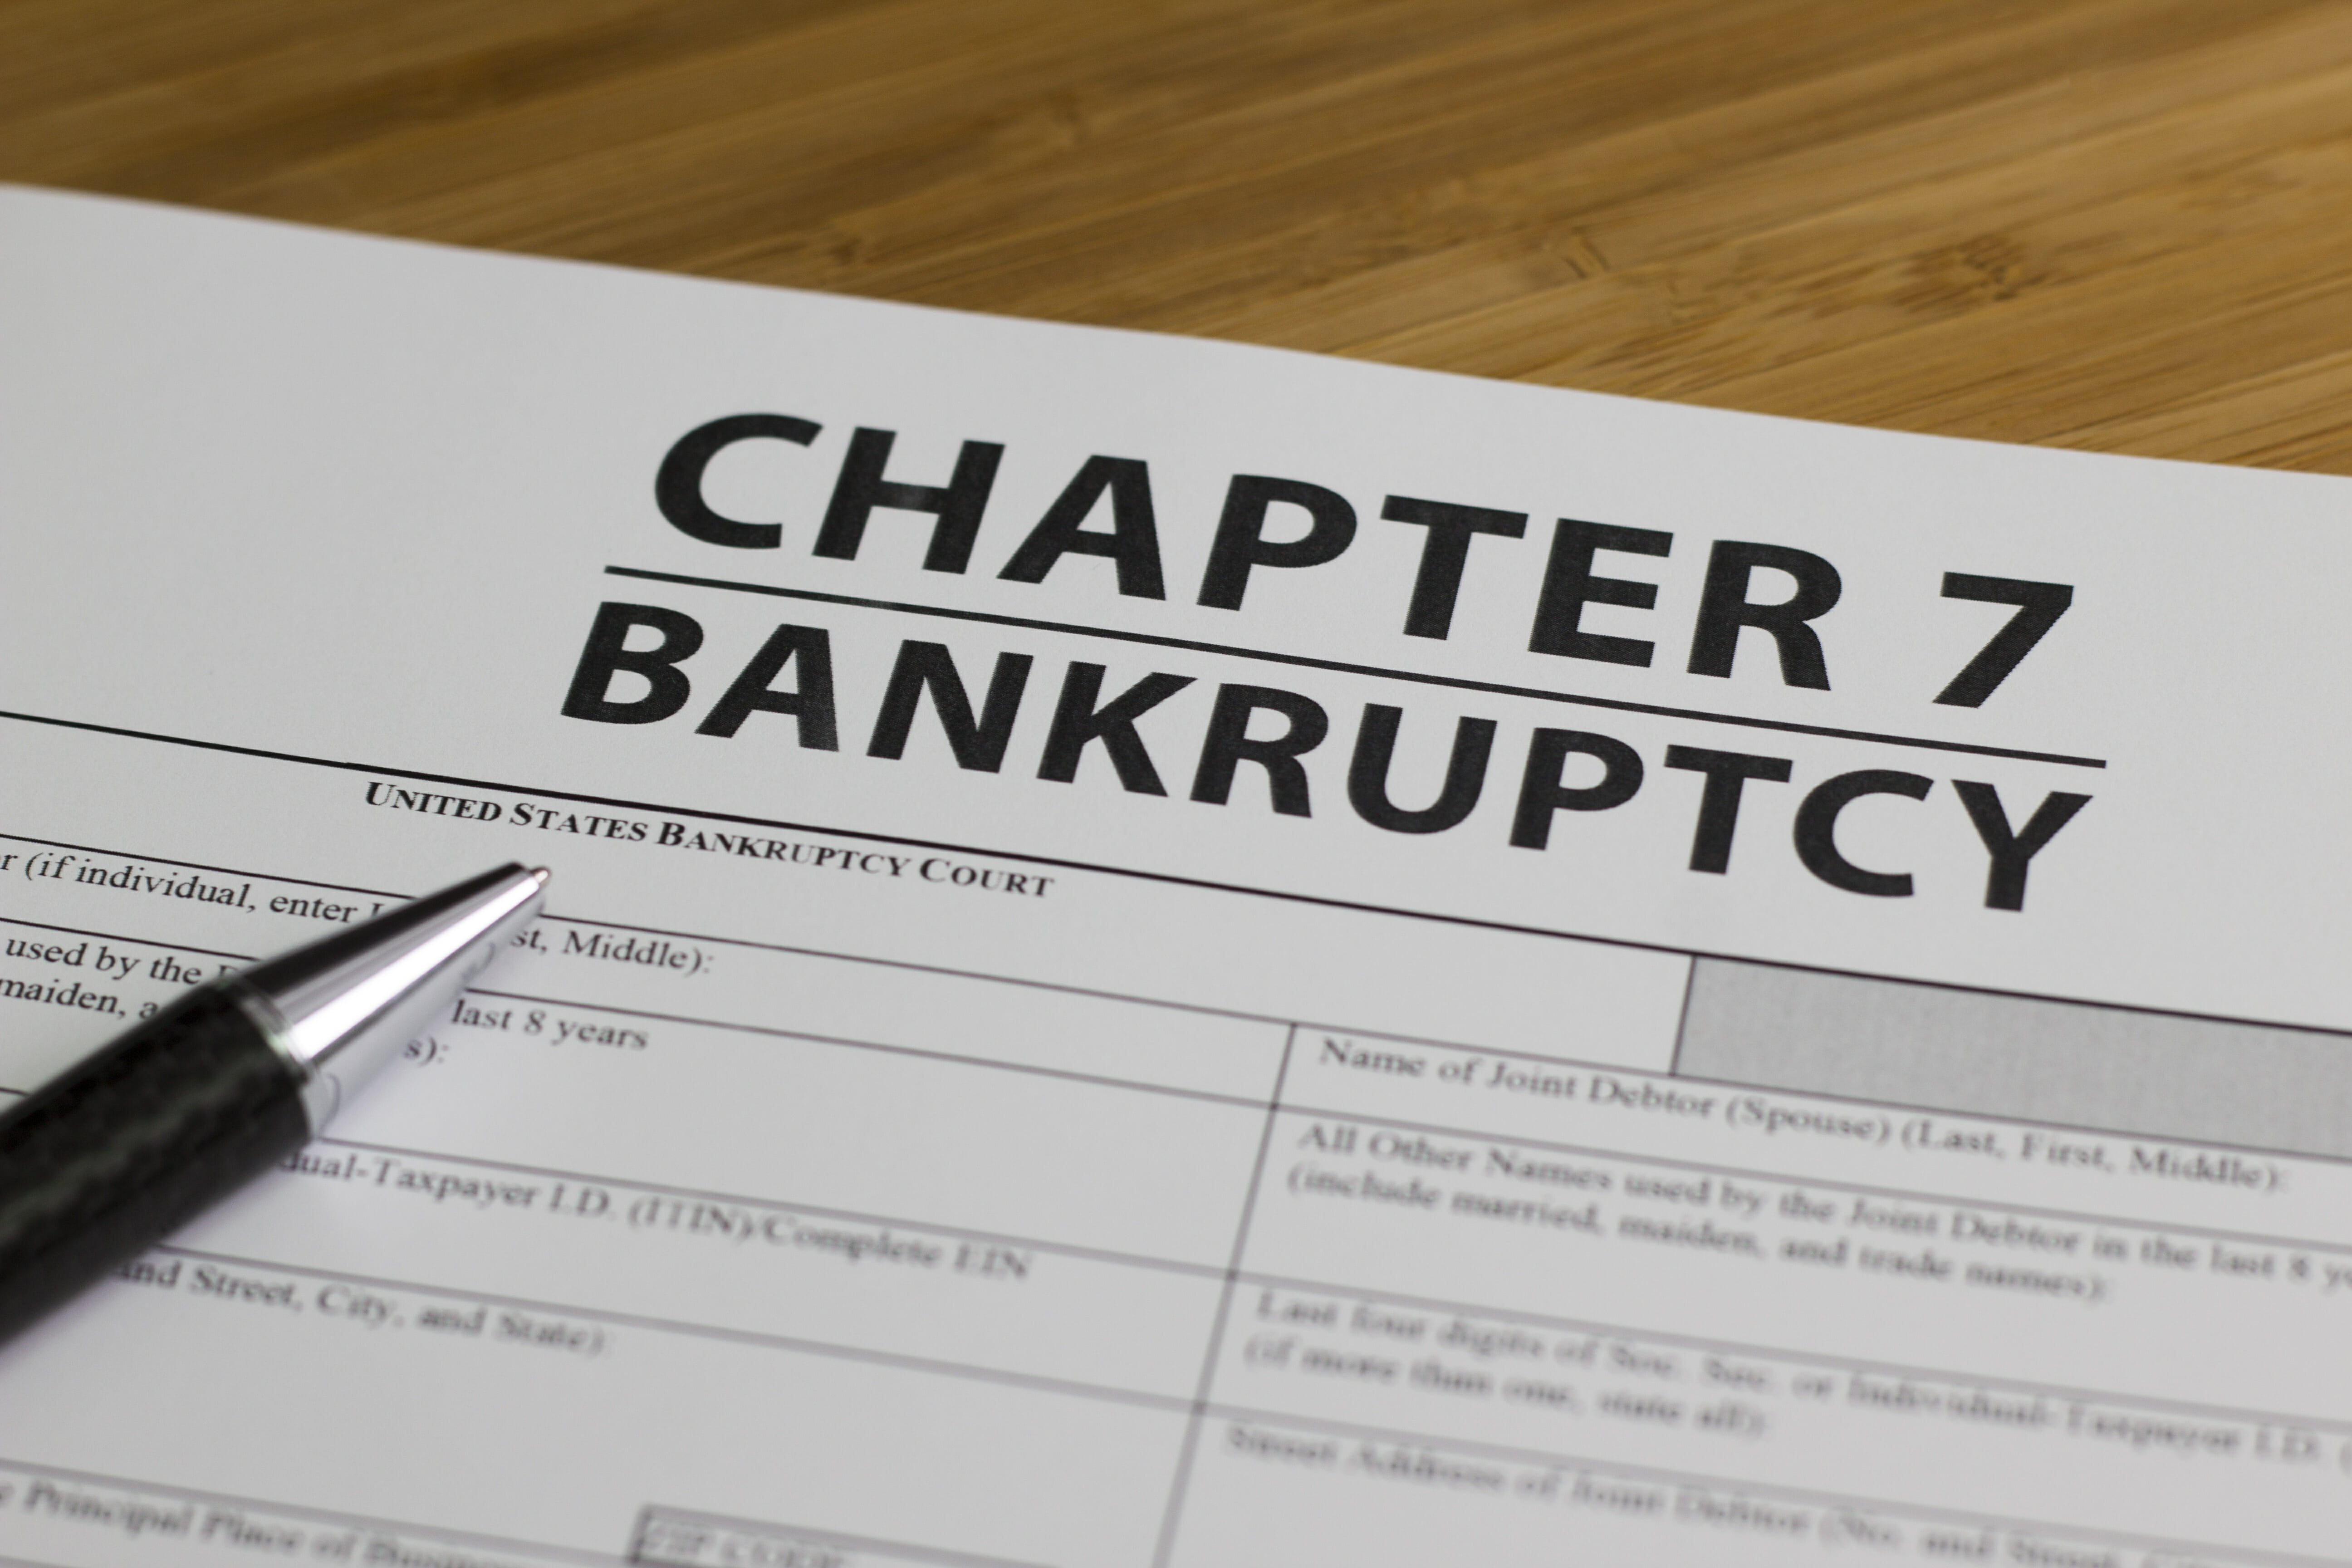 Chapter Bankruptcy 7 Lawyer